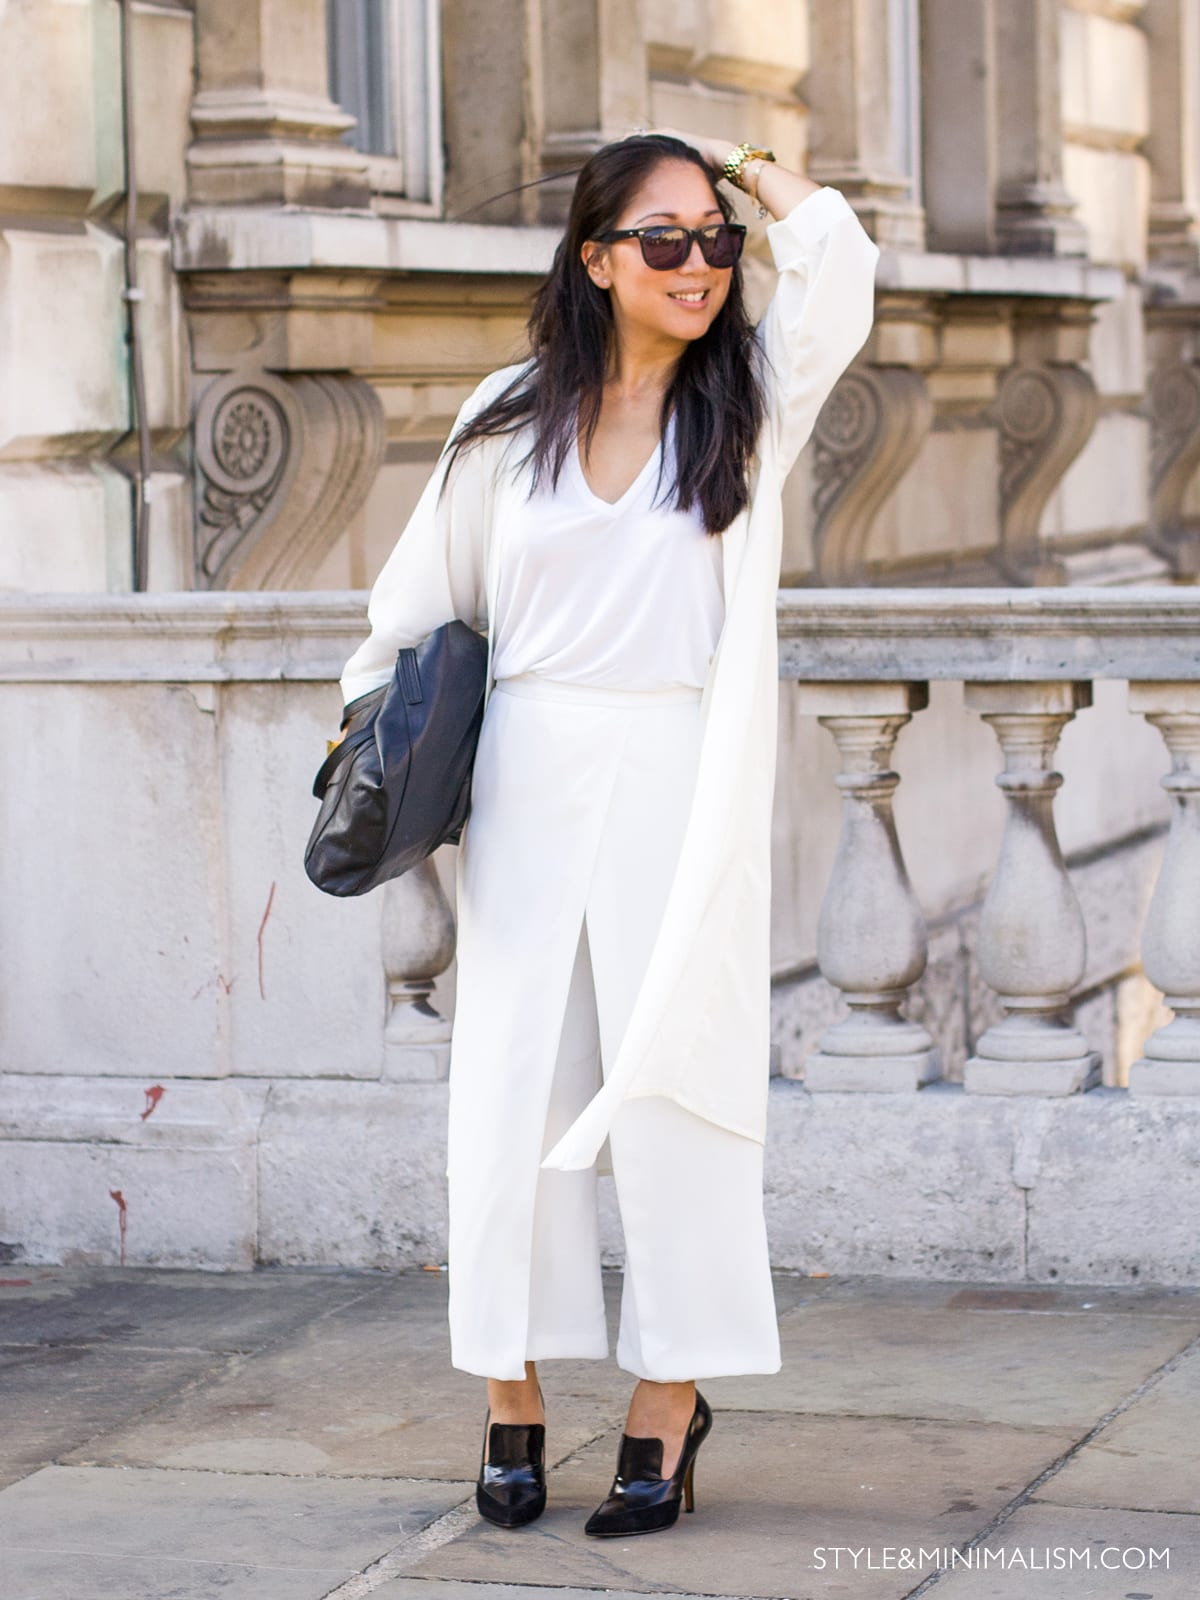 StyleANDMinimalism | LFW SS15 | Street Style | Day 1 | Glenda Stephenson of Work Your Wardrobe